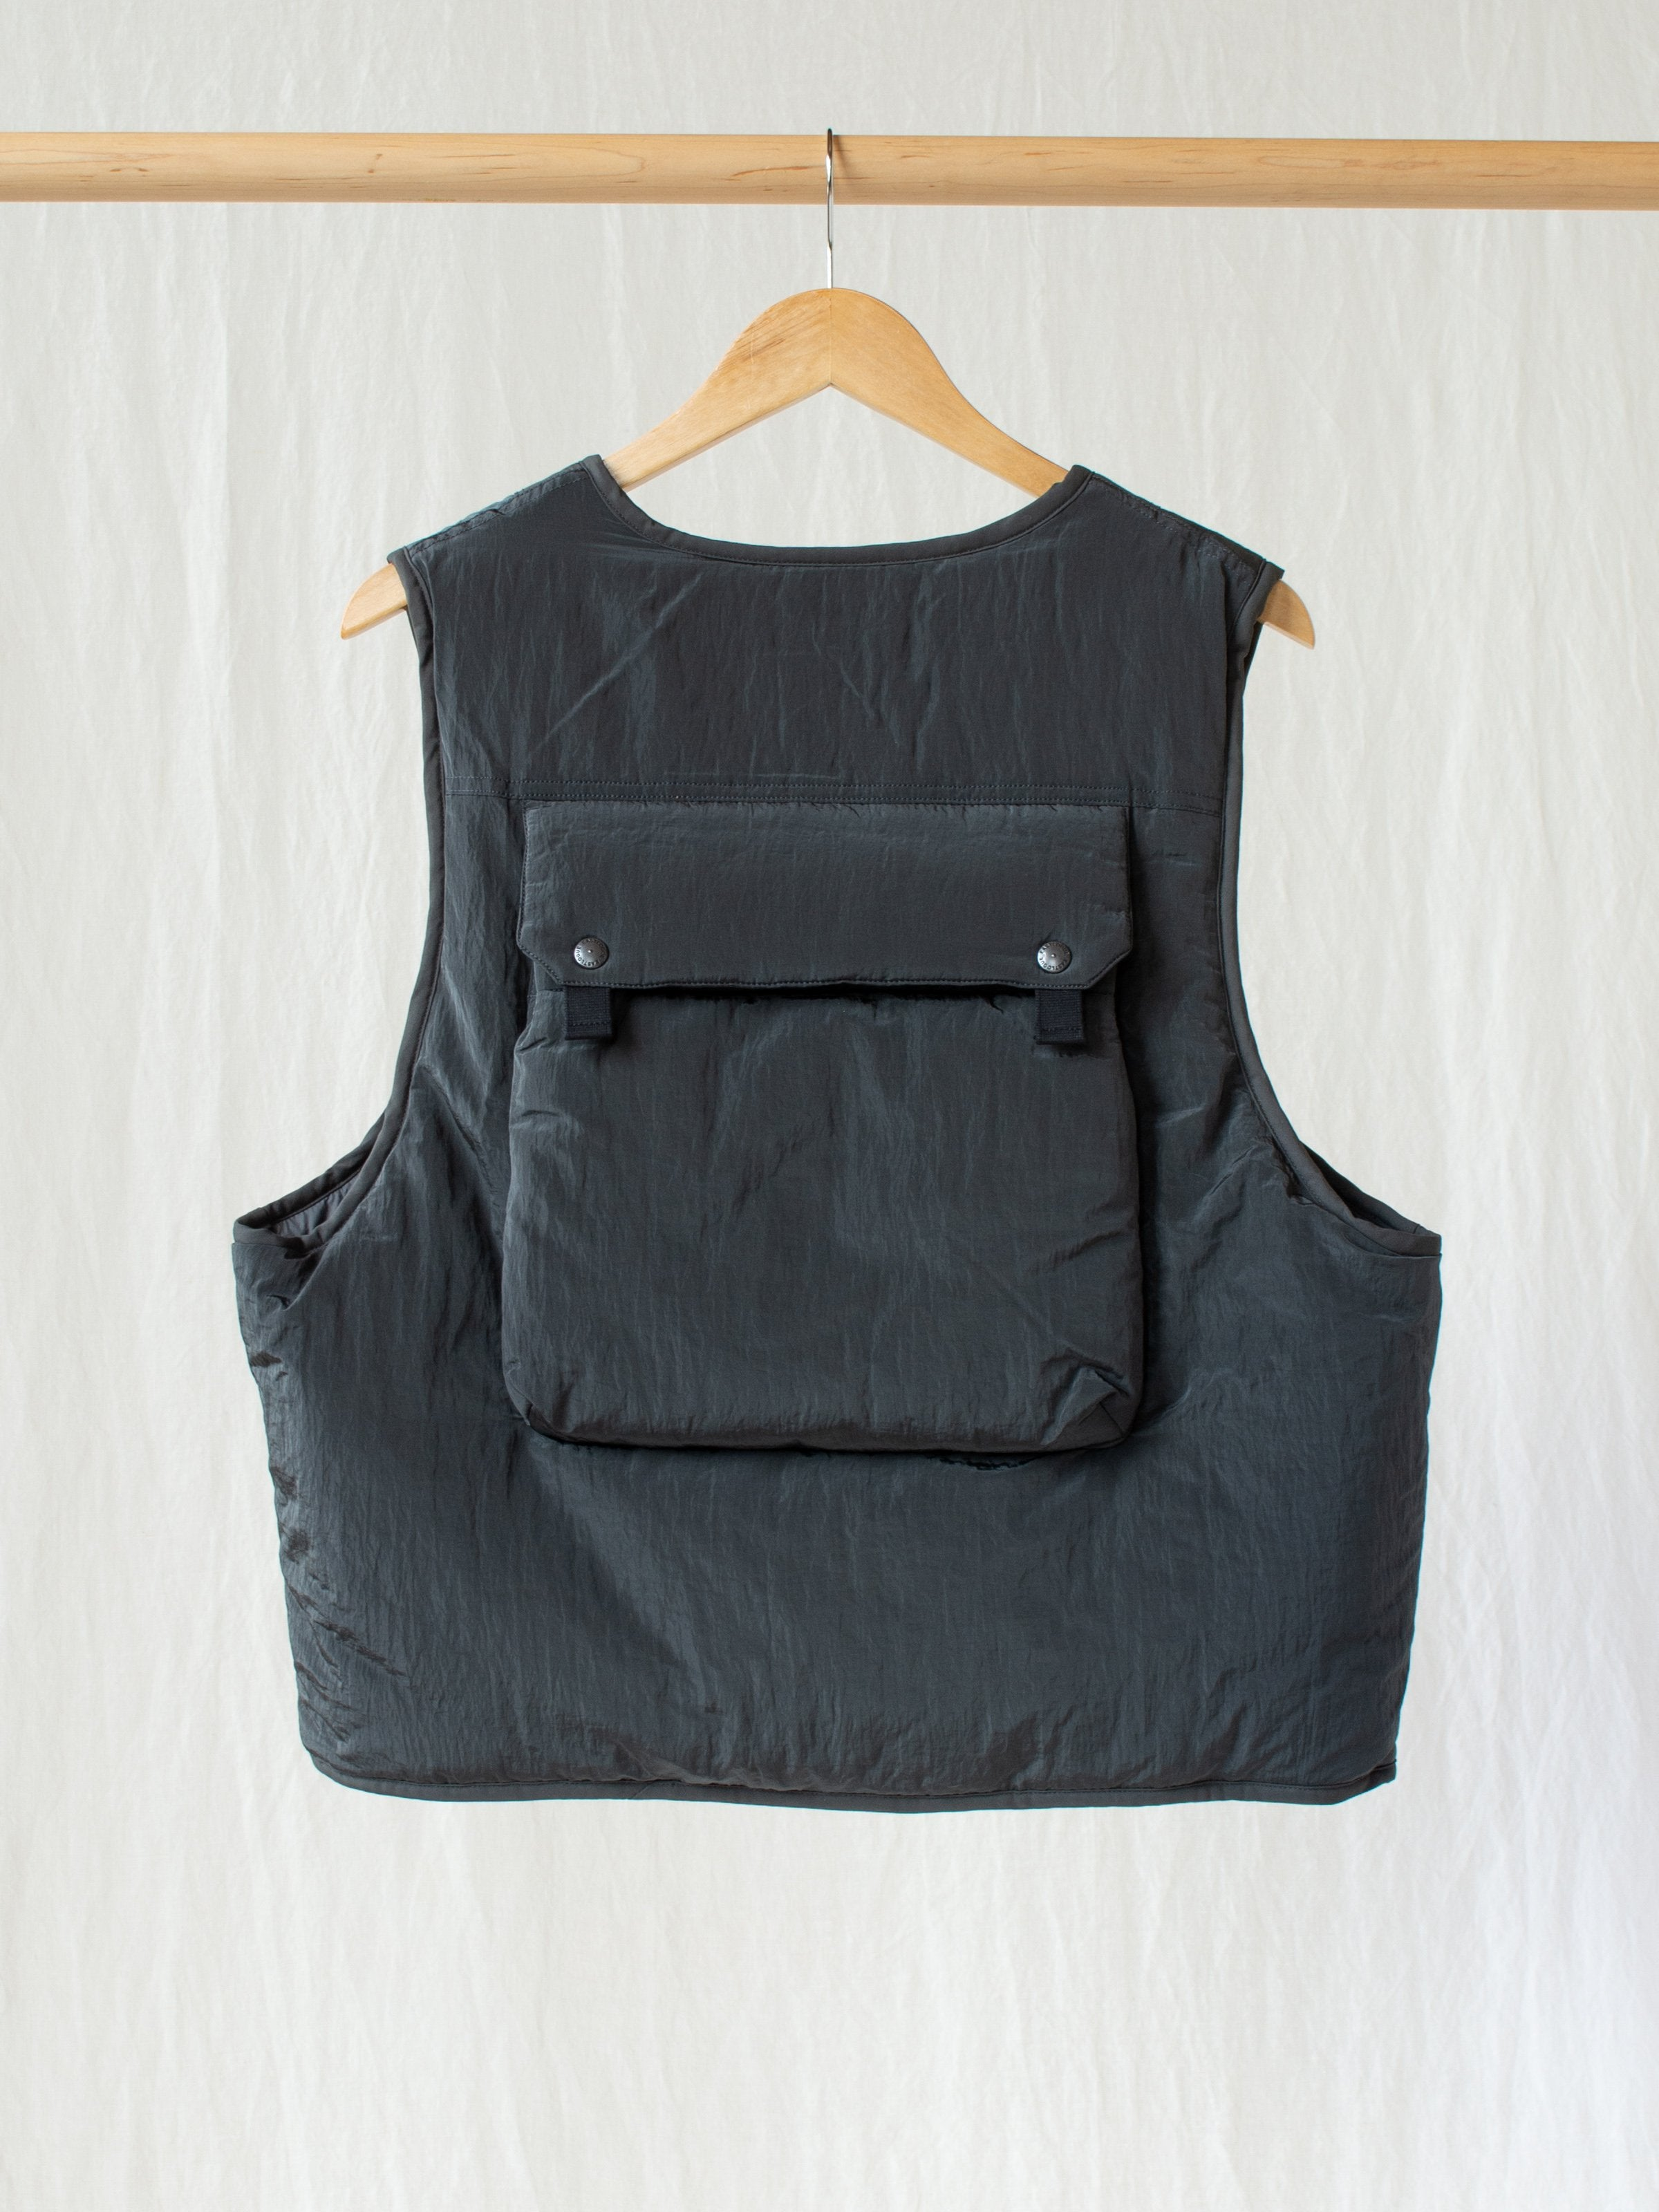 Wagon Vest - Gray Washer